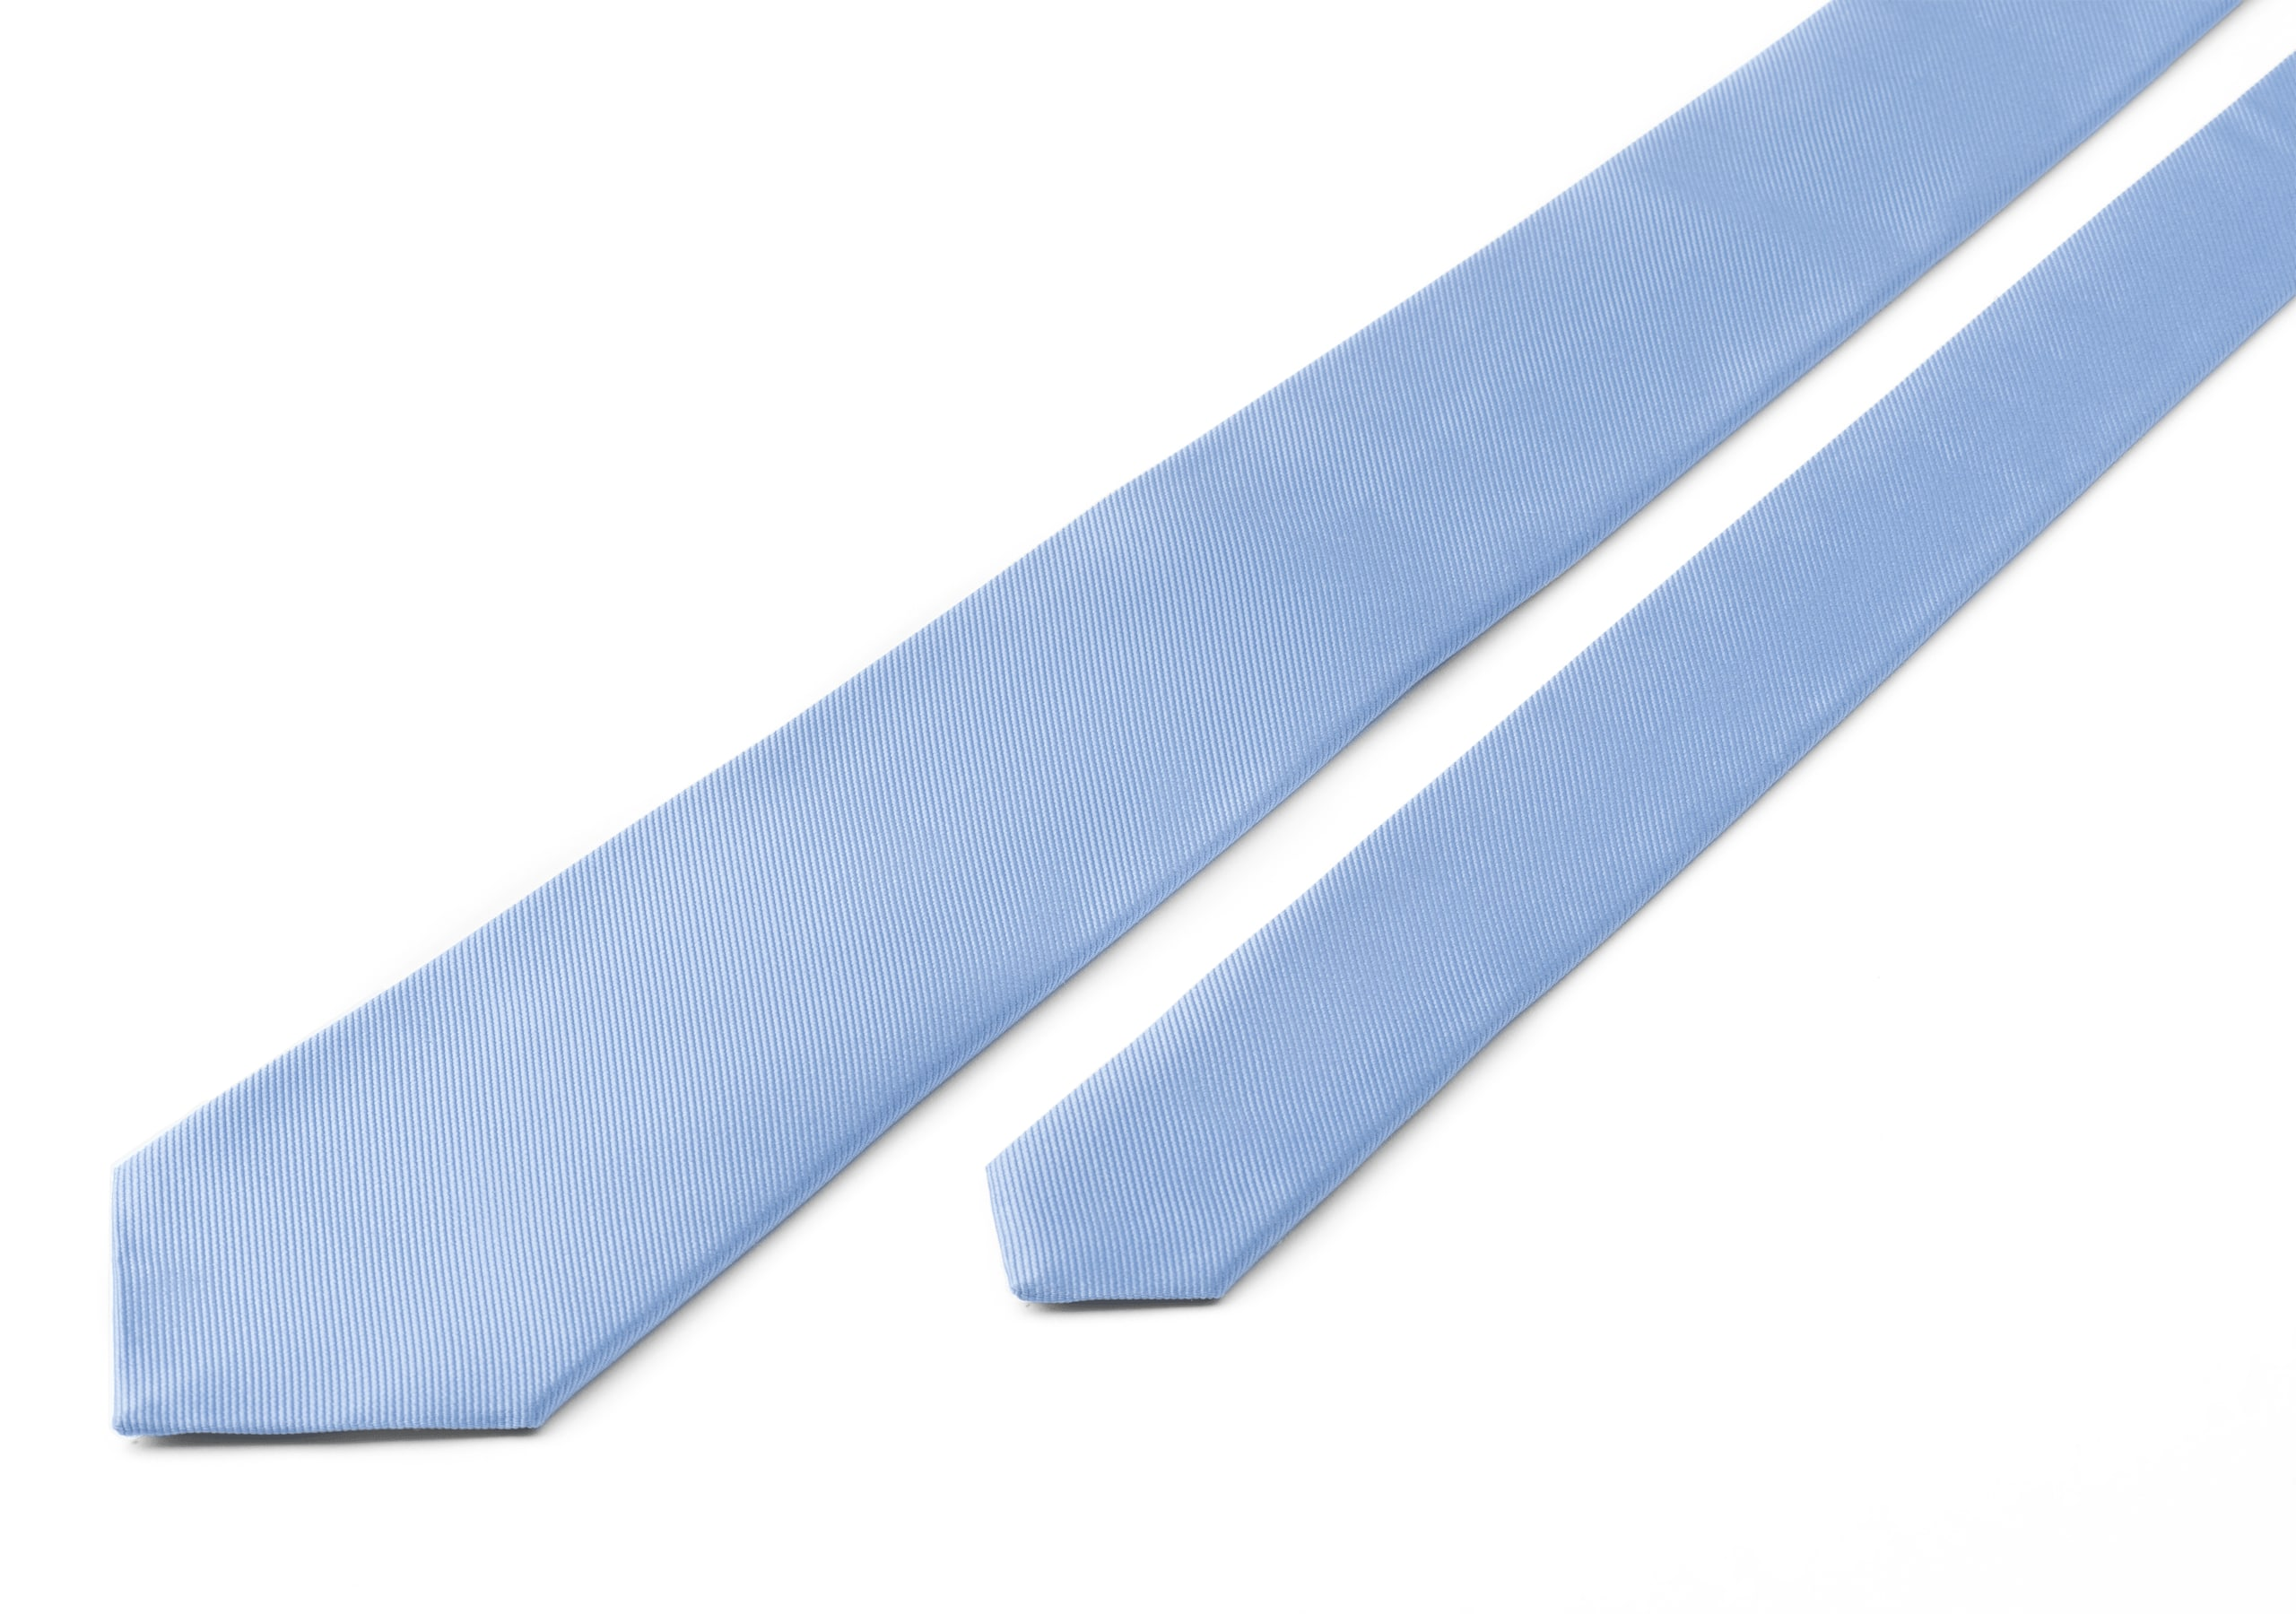 Oxford tie Church's Silk Jacquard Light Blue